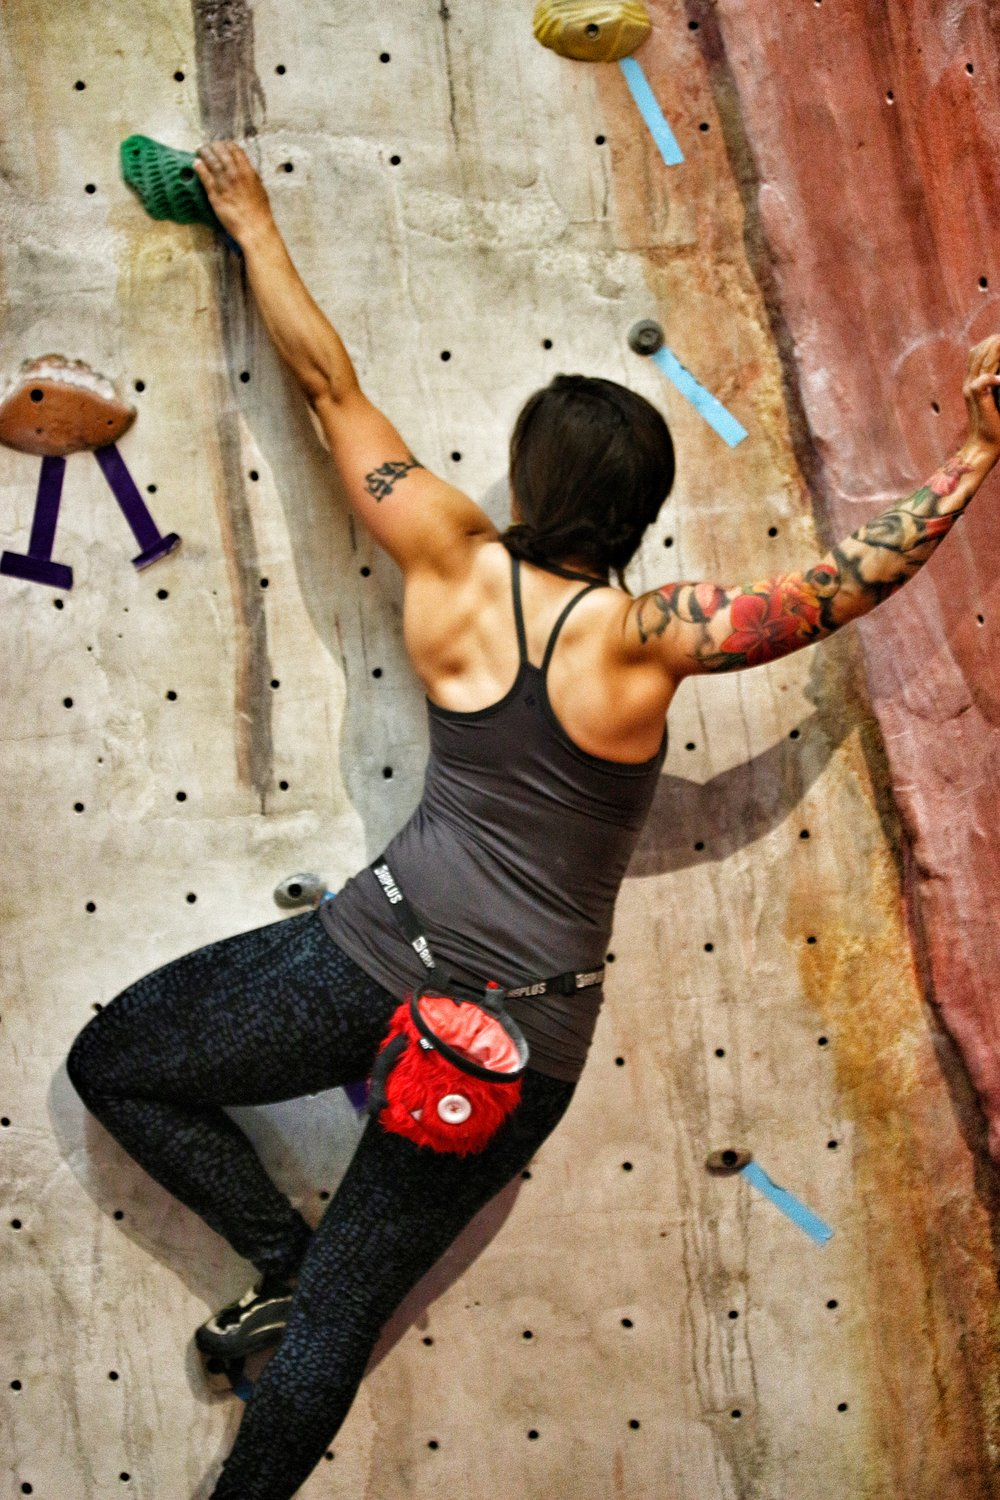 climbing equipment climbing gear training rock climbing portland antigravity equipment juan rodriguez.jpg